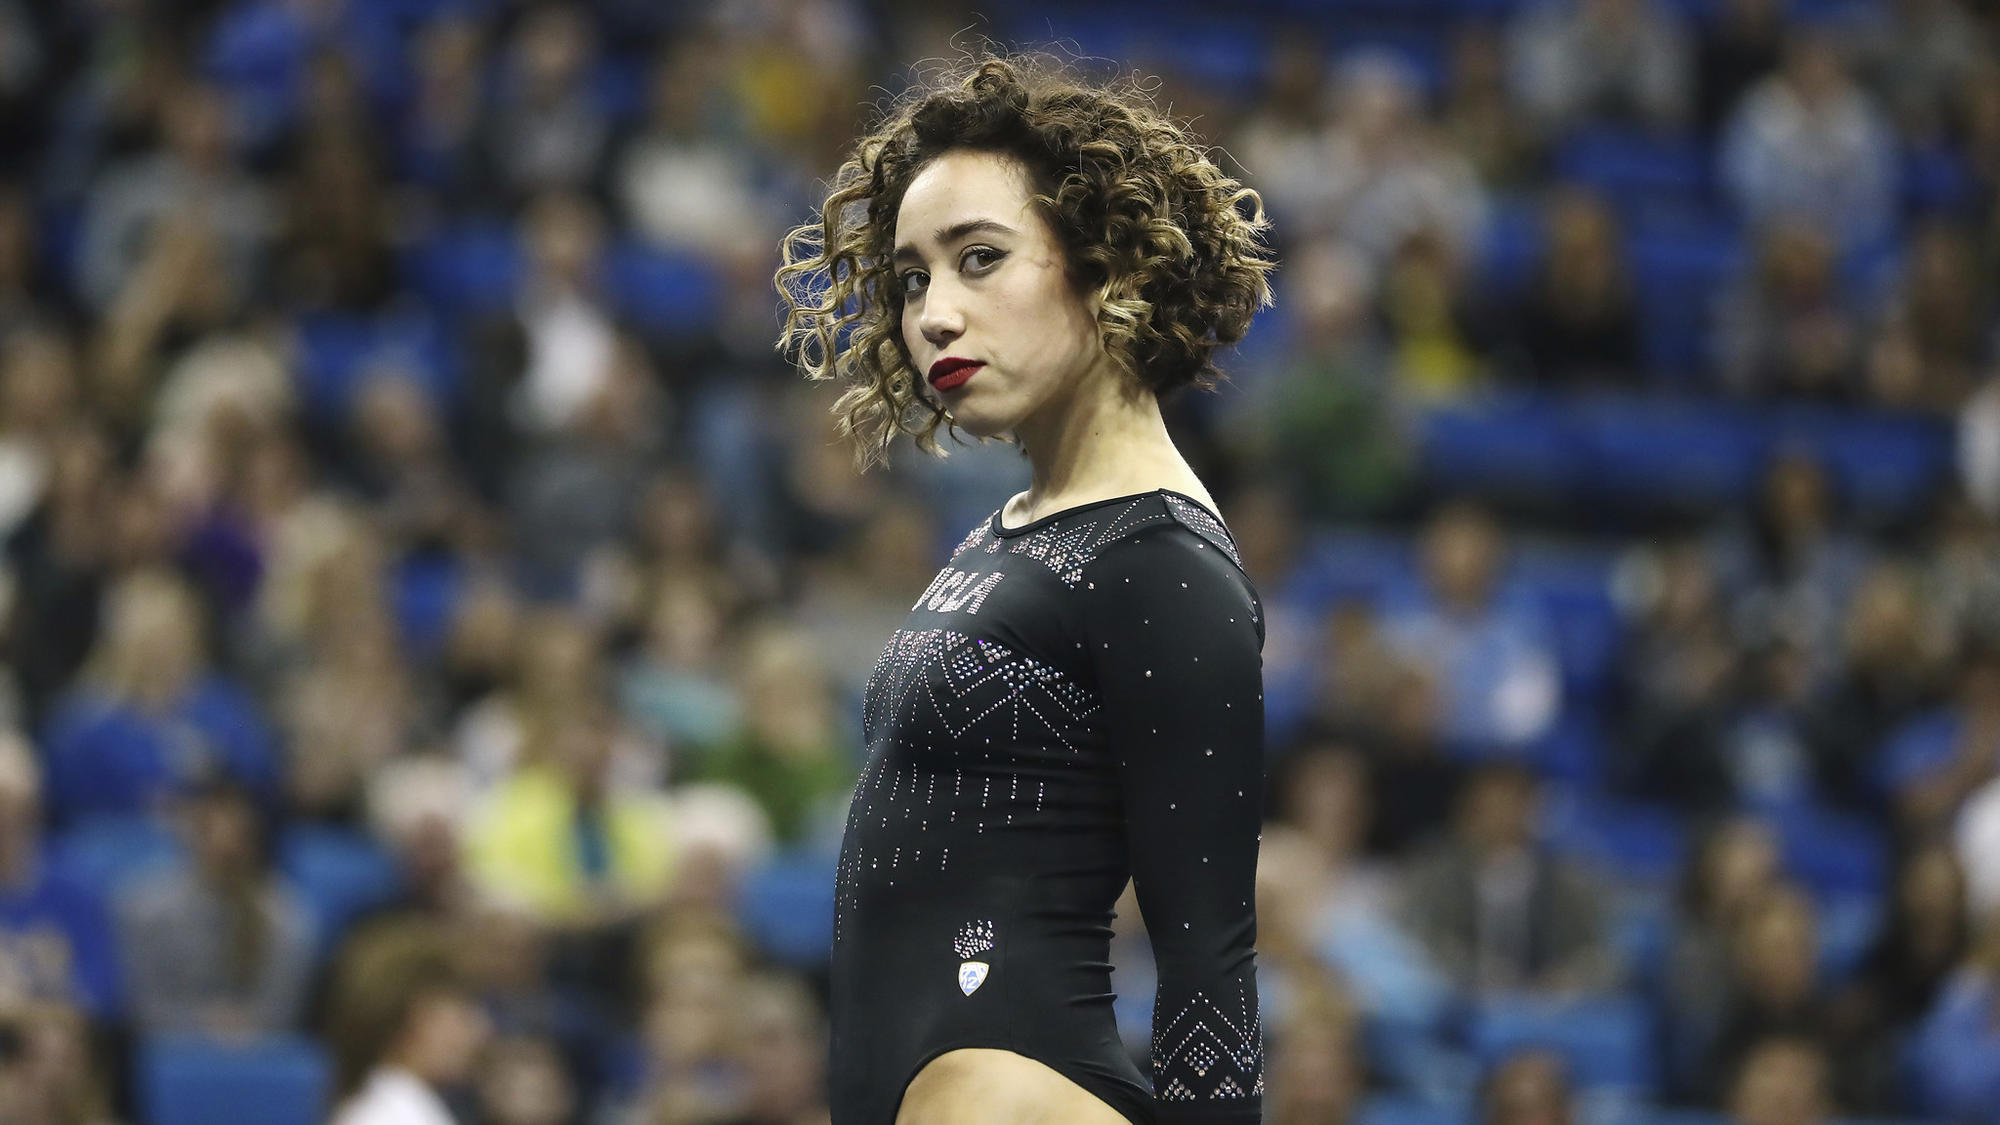 The Ucla Gymnast S Moves Are Killer So Please Stop